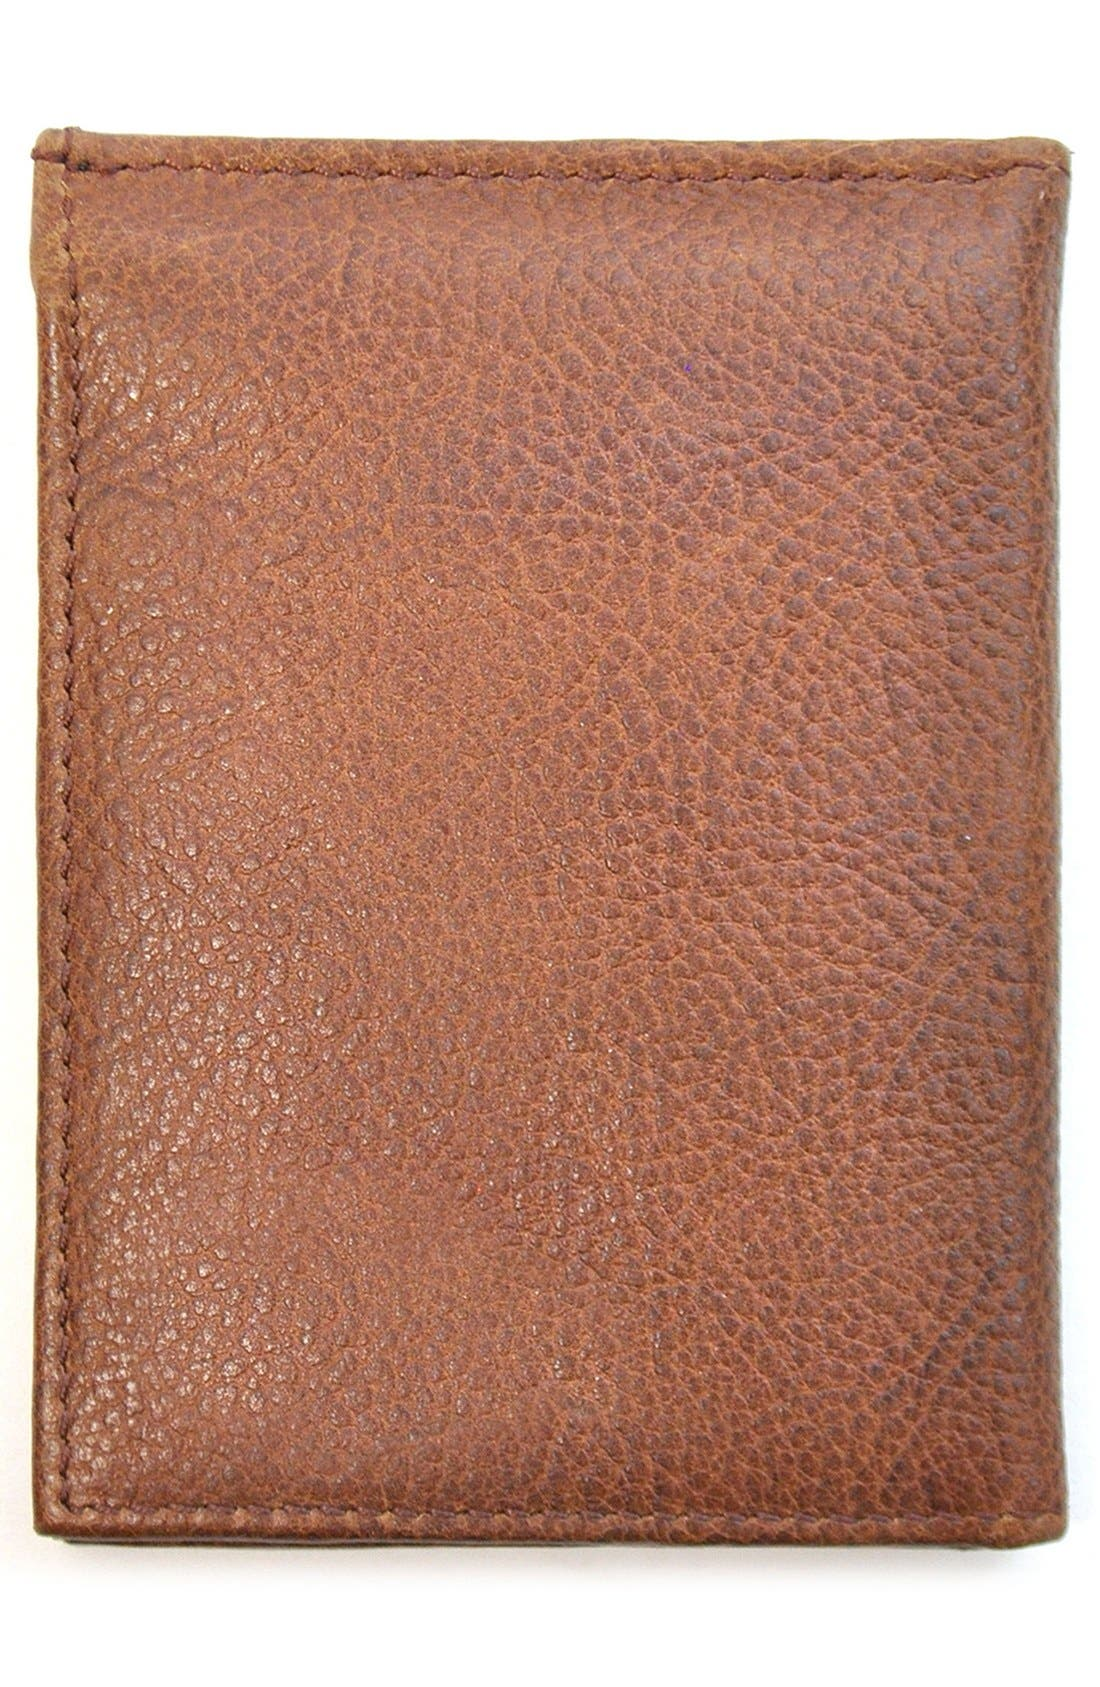 Triple Play Leather L-Fold Wallet,                             Alternate thumbnail 8, color,                             202